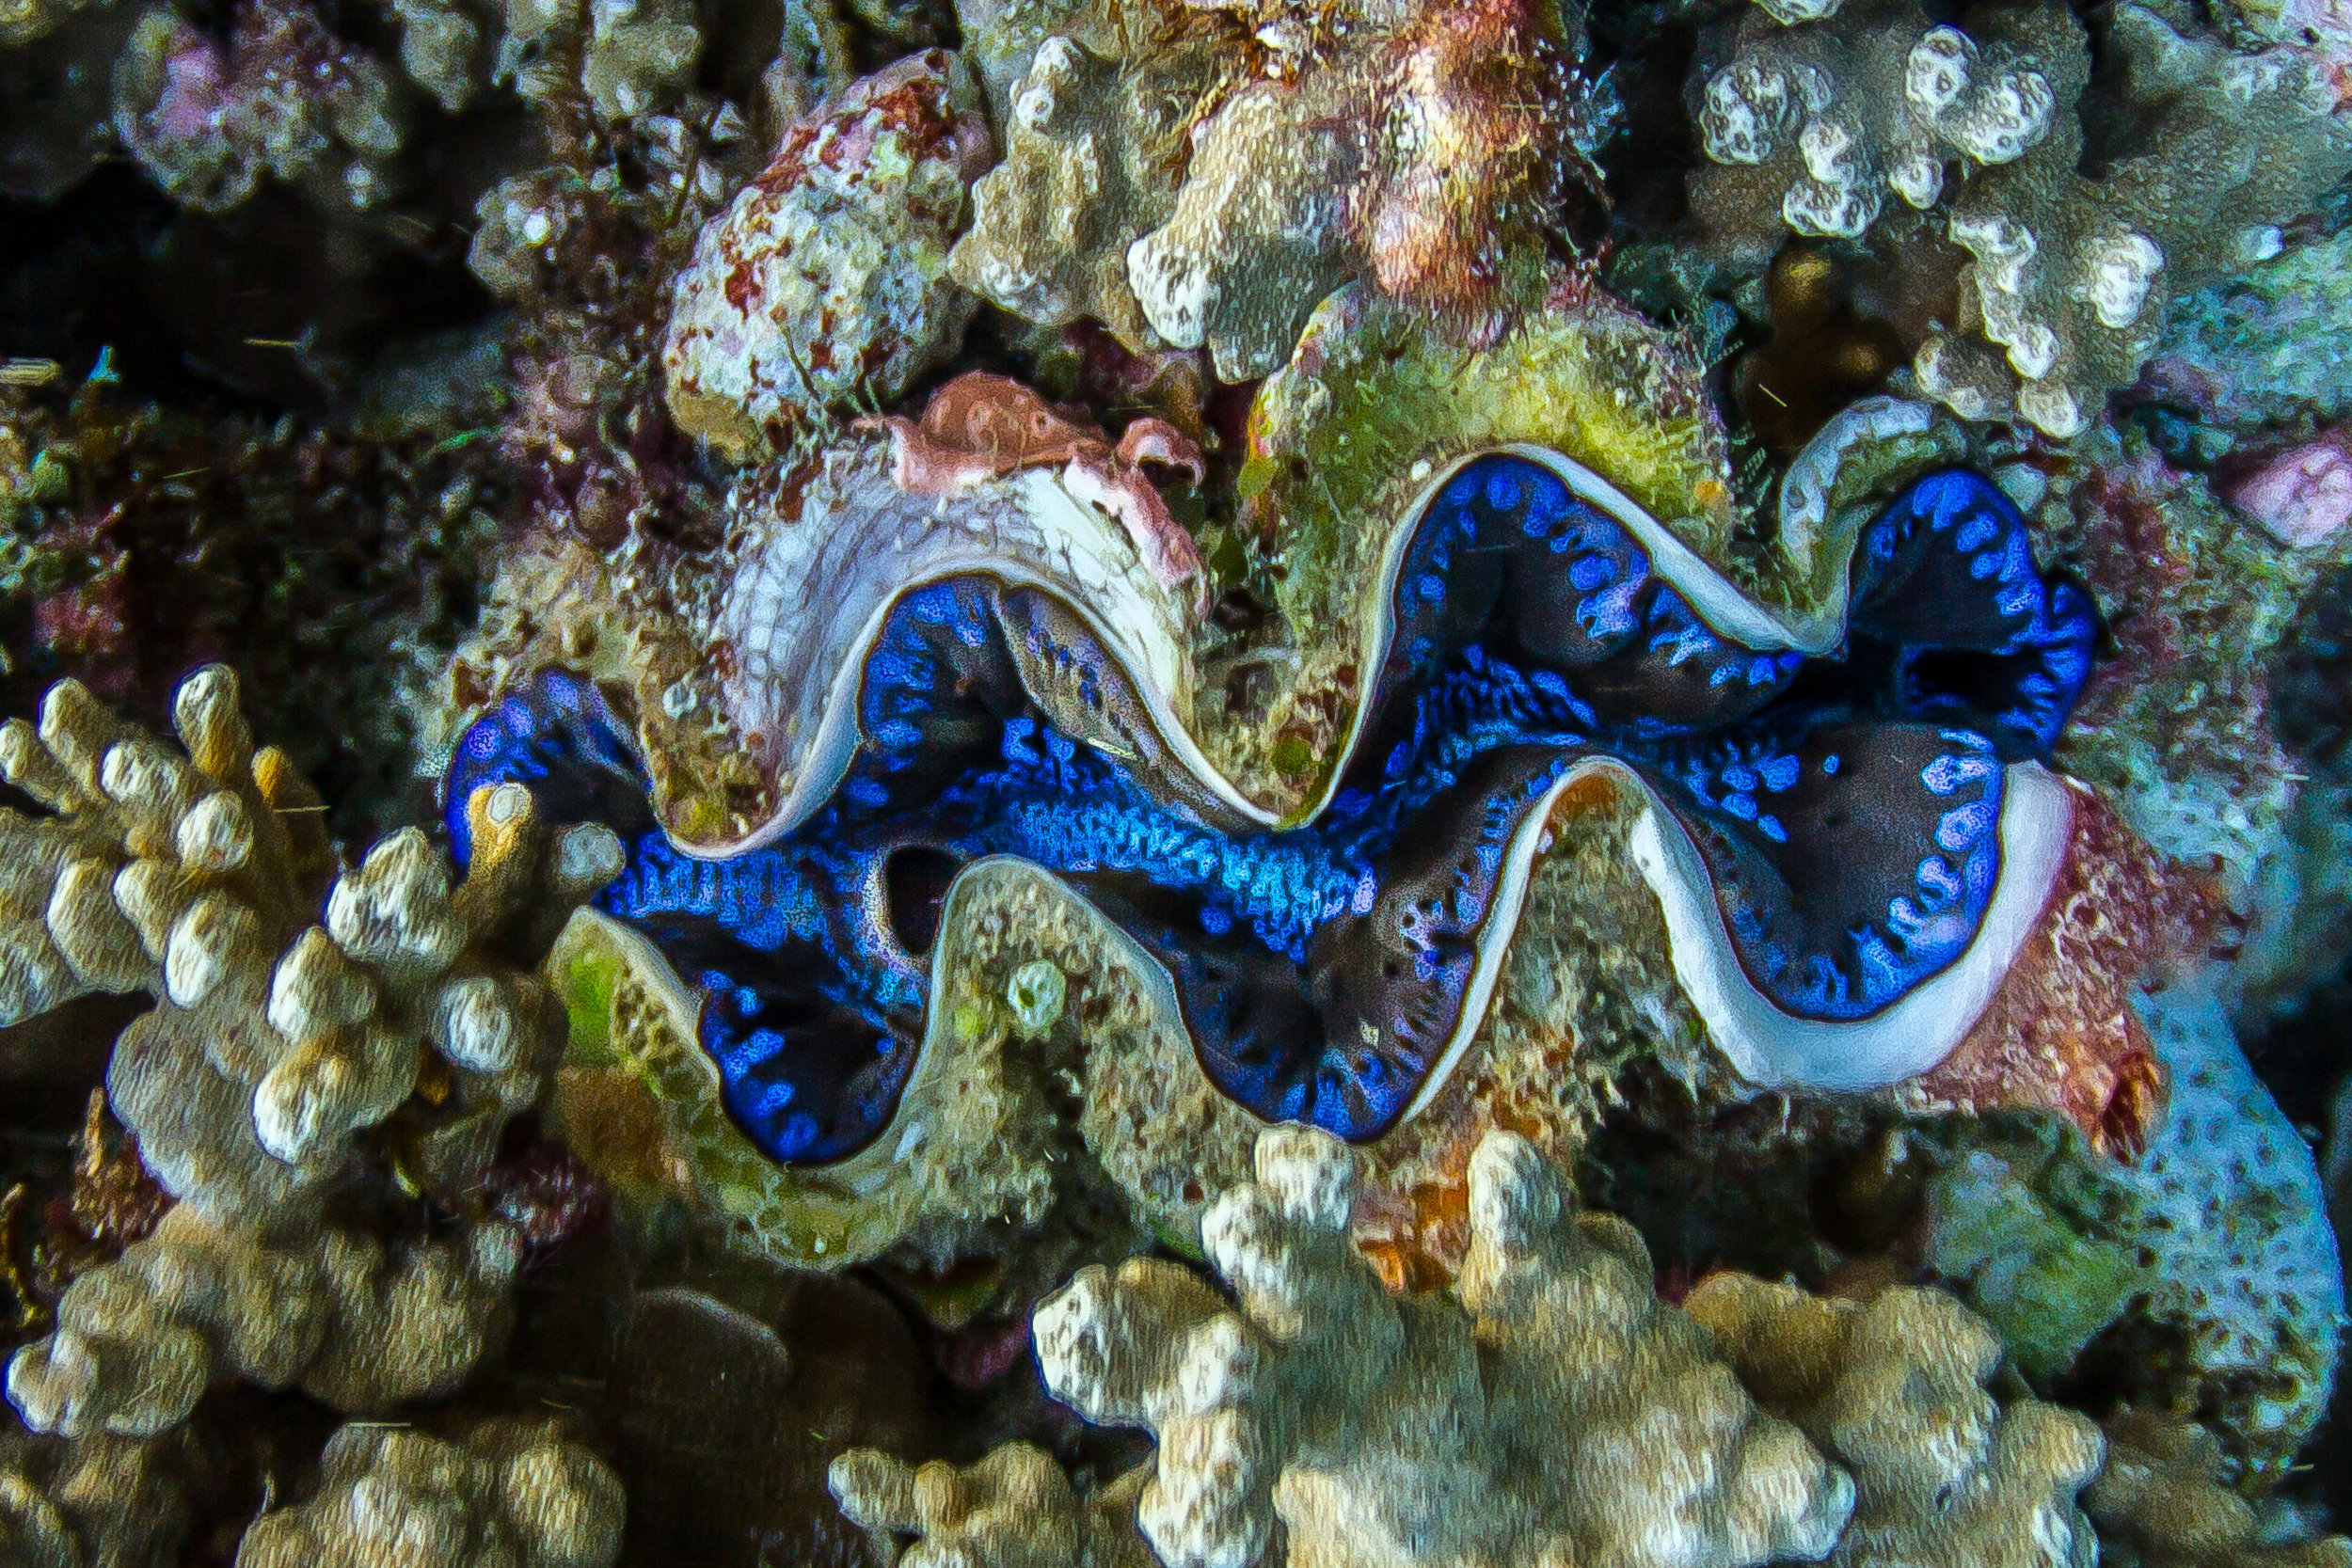 Giant Clam by DBZFan30.jpg